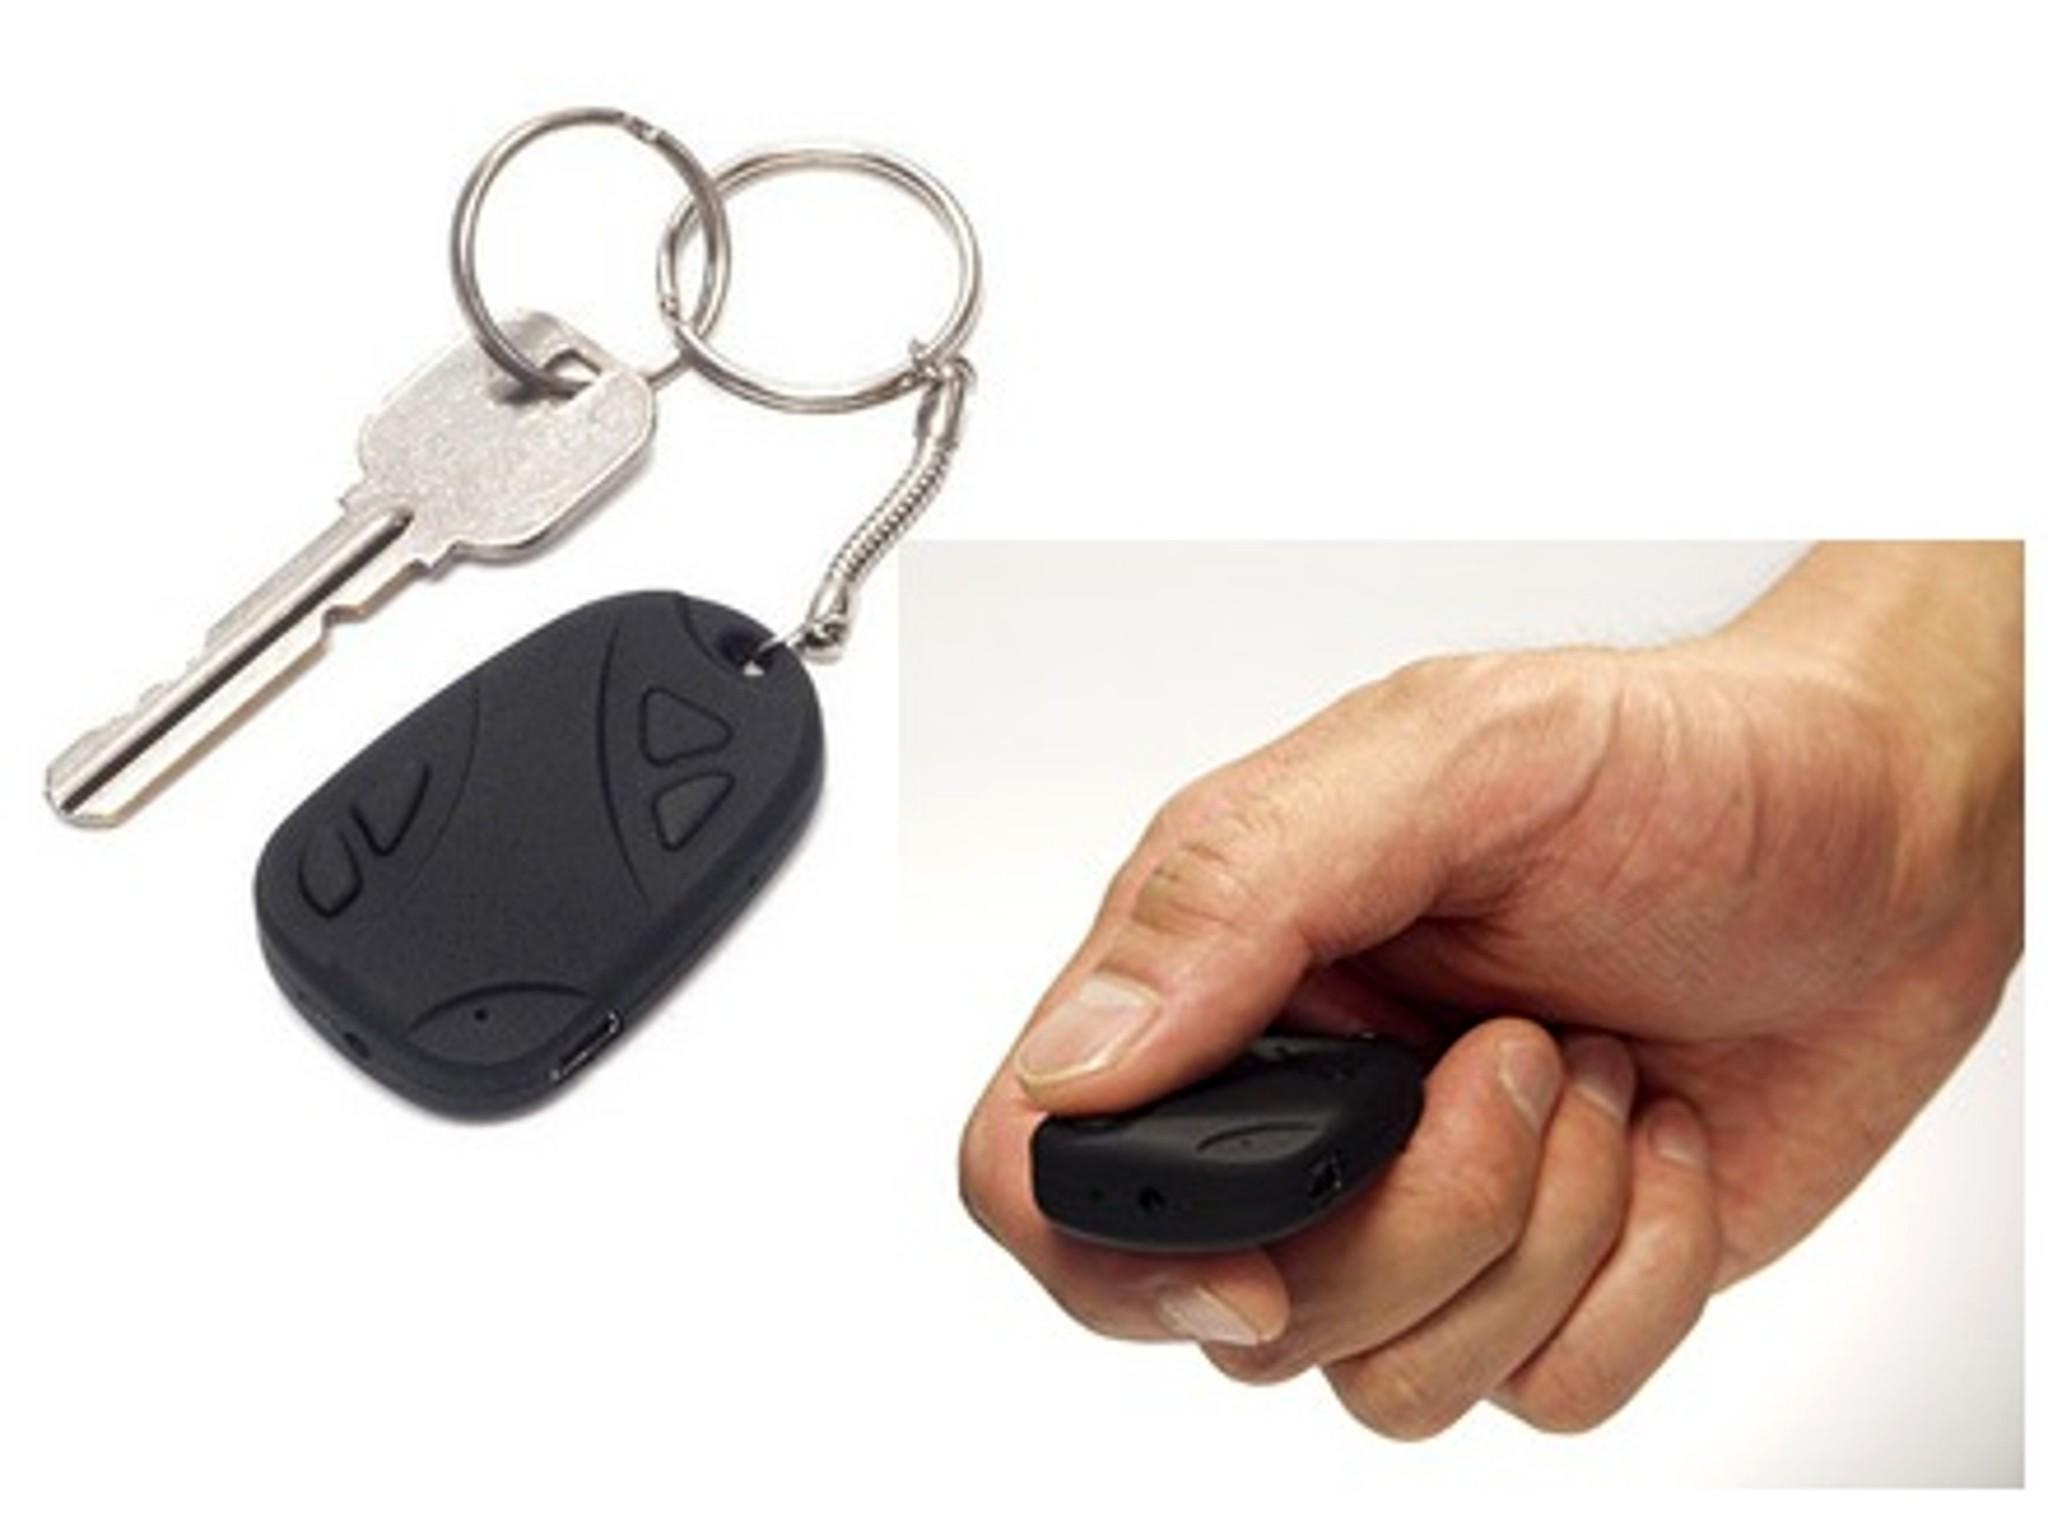 Swann's HD RemoteCam can shoot videos and stills in its disguise as a car remote.